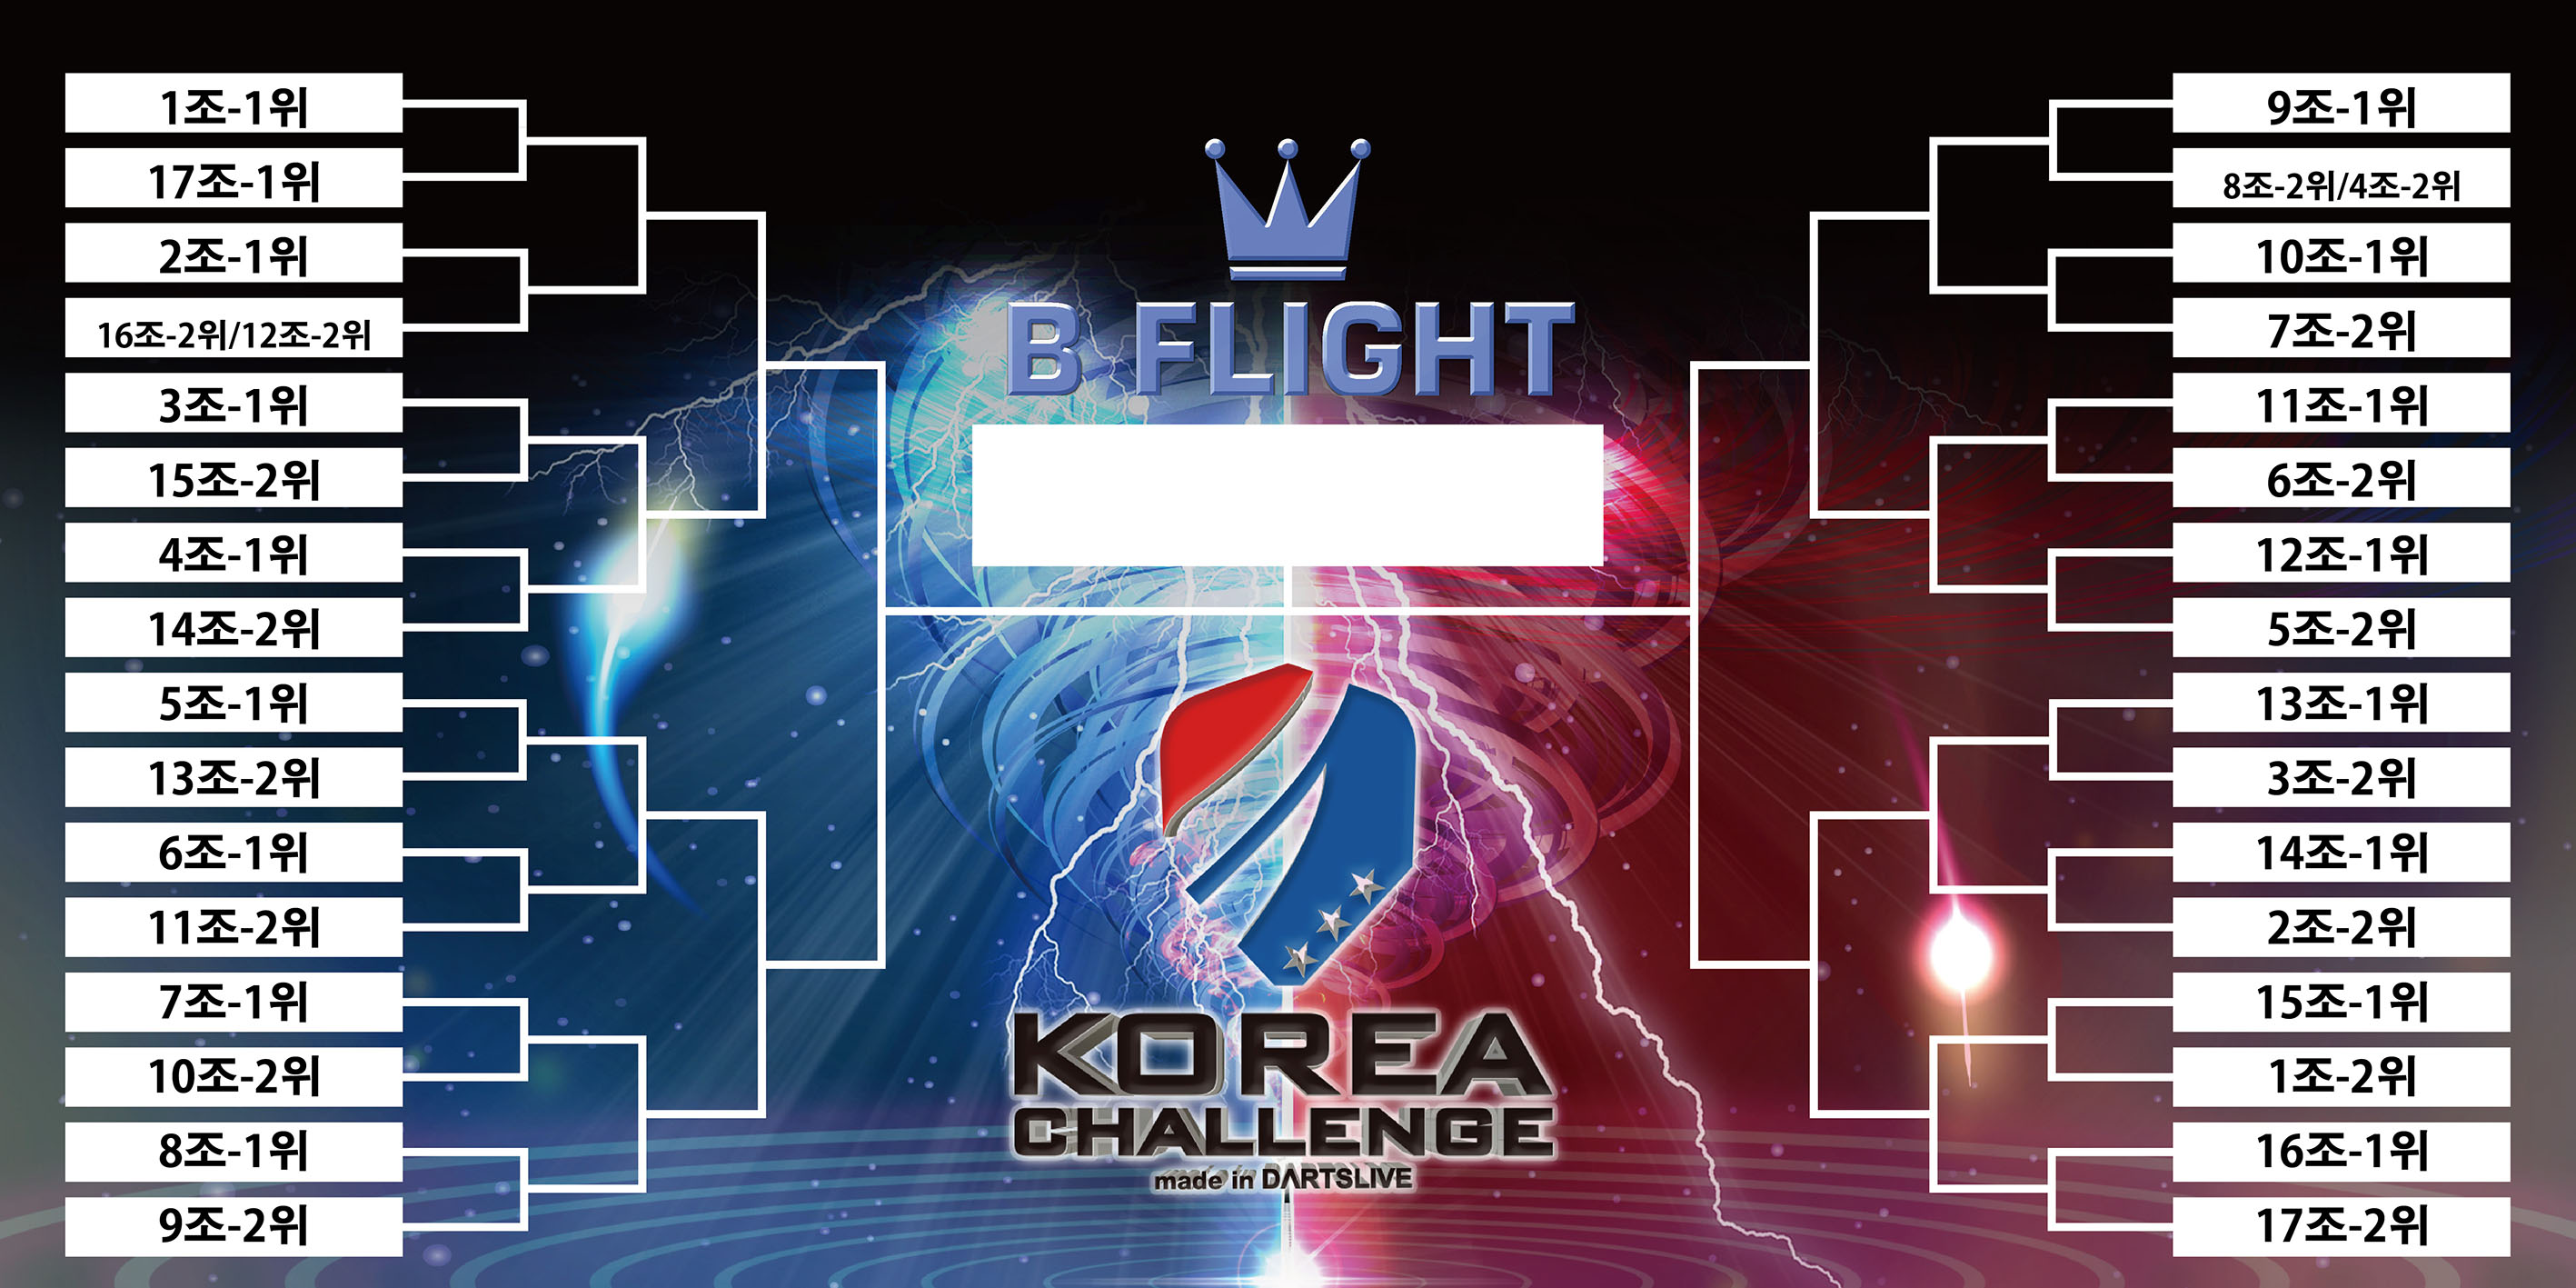 Best32_Bracket_BFlight_Bracket_1-01.jpg